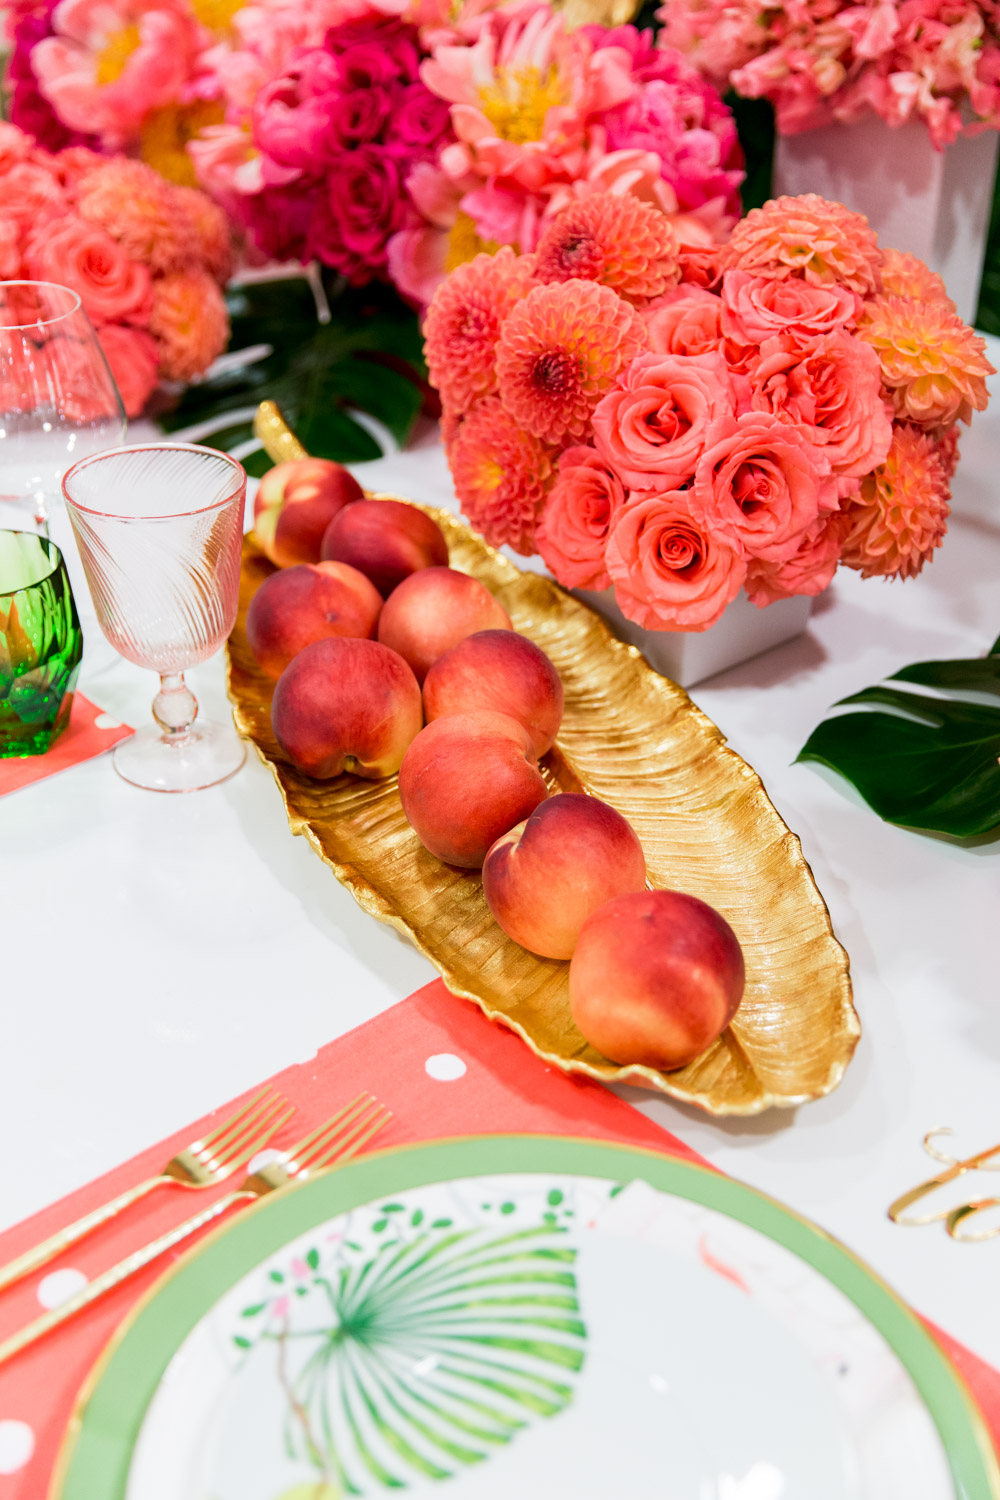 Peaches on a gold leaf bread plate on a luxury dinner party or wedding table Gorgeous pink and orange floral arrangements with a green palm leaf wall and pink Kate Spade placemats with Bloom Box Details Details and Cavin Elizabeth Photography